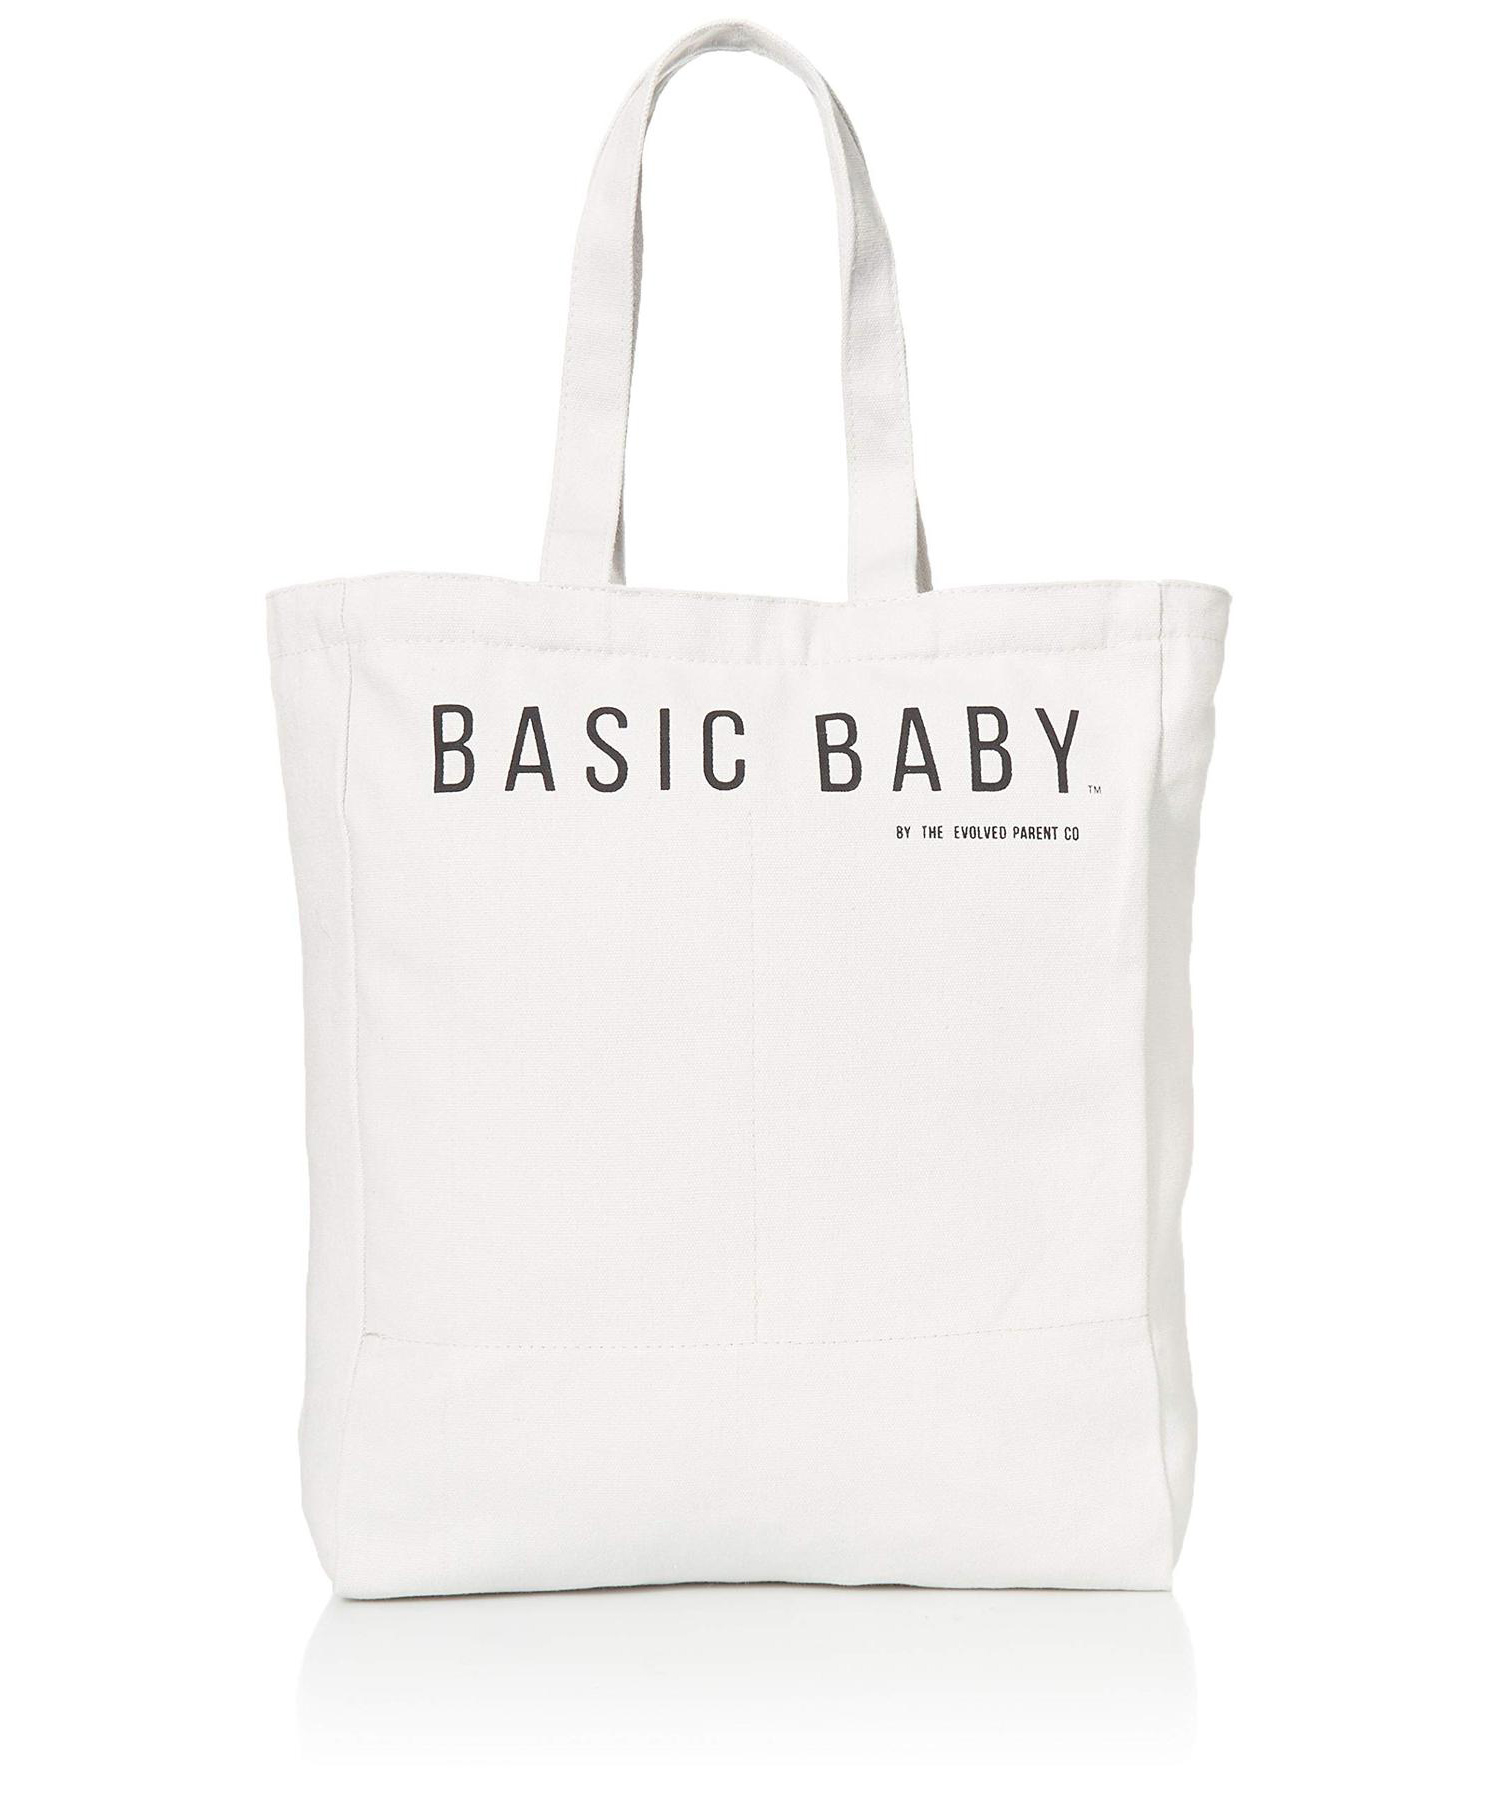 THE BASIC BABY DIAPER BAG - The Evolved Parent CO - USA